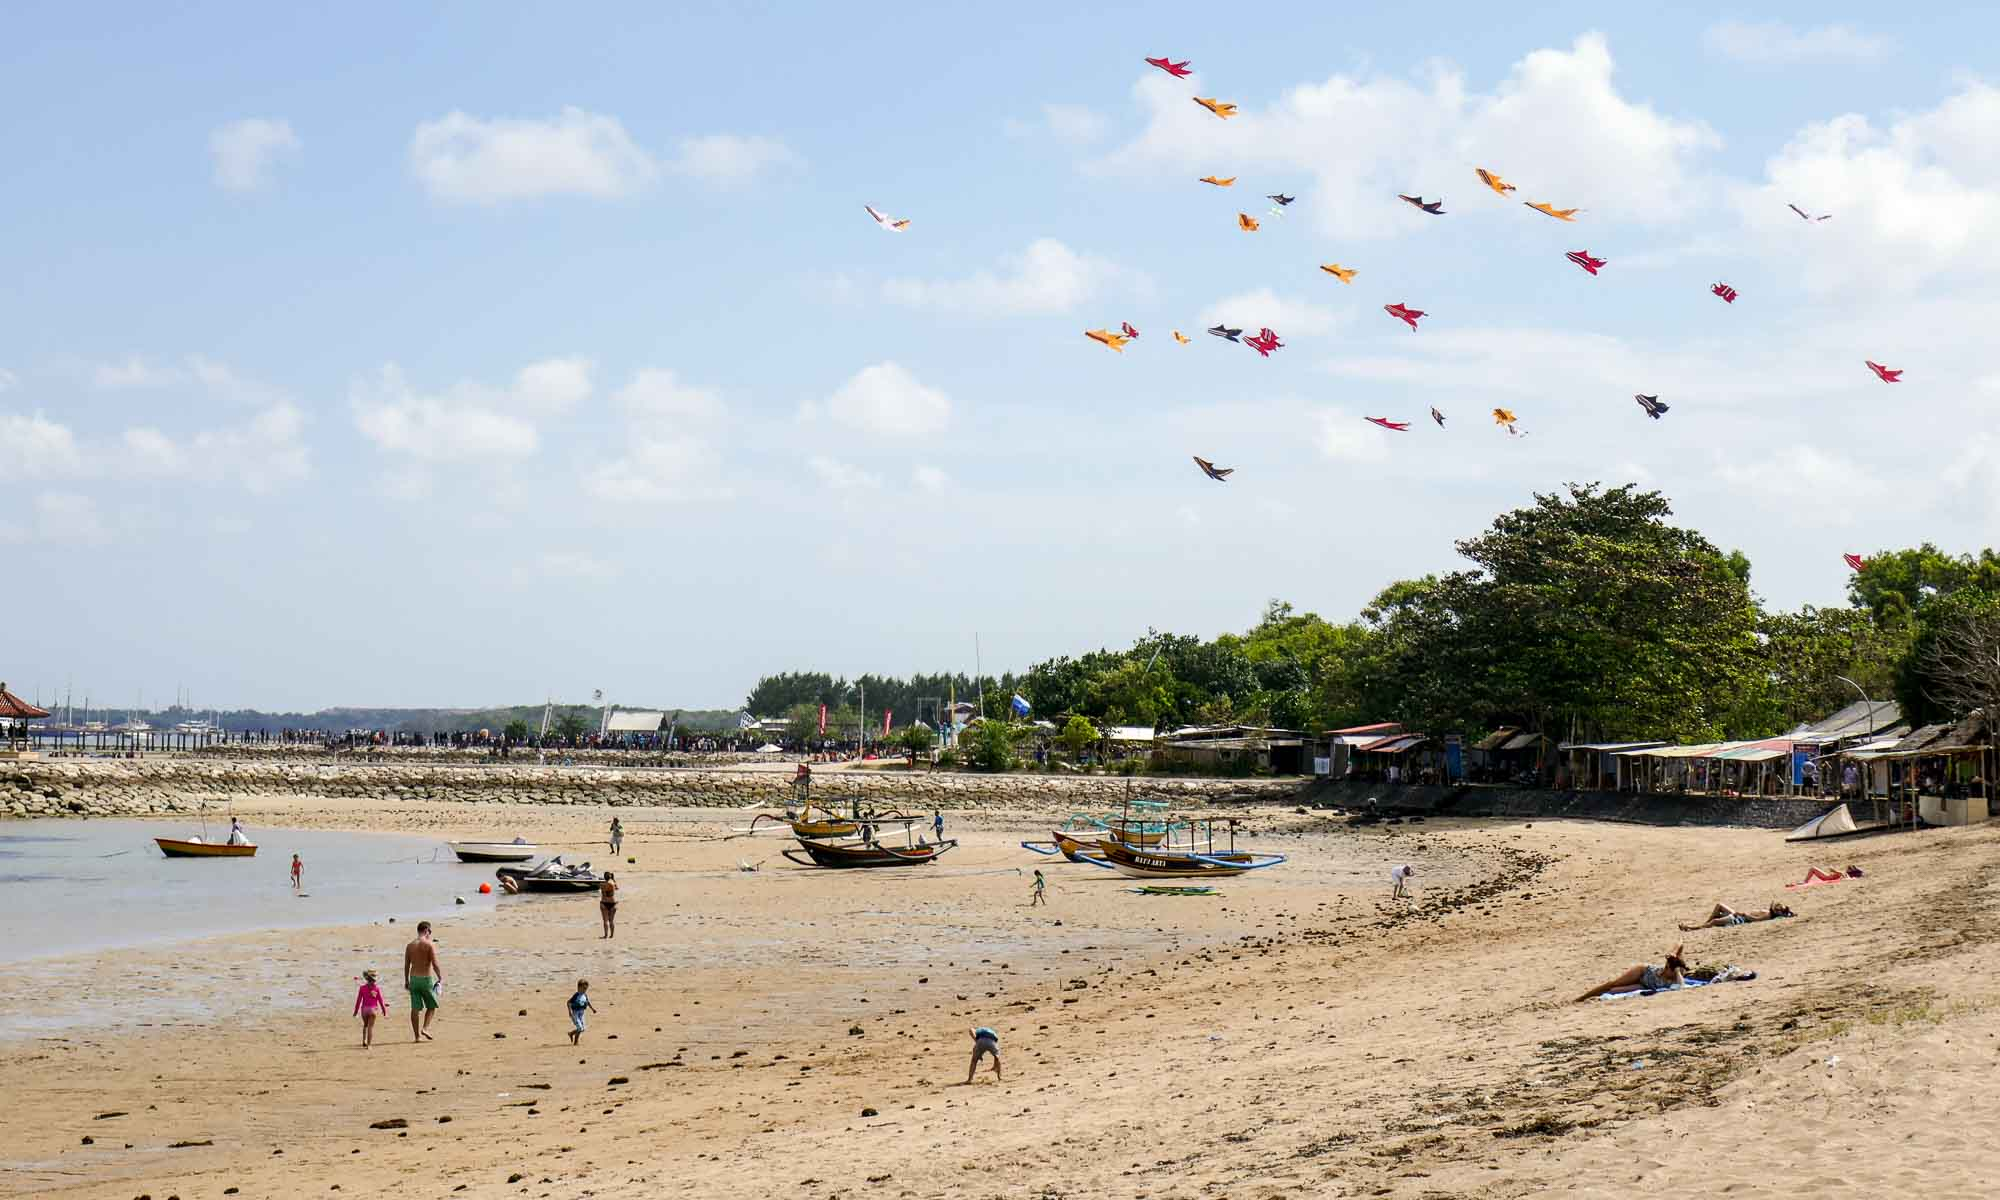 Bali Kite Festival at Sanur Beach